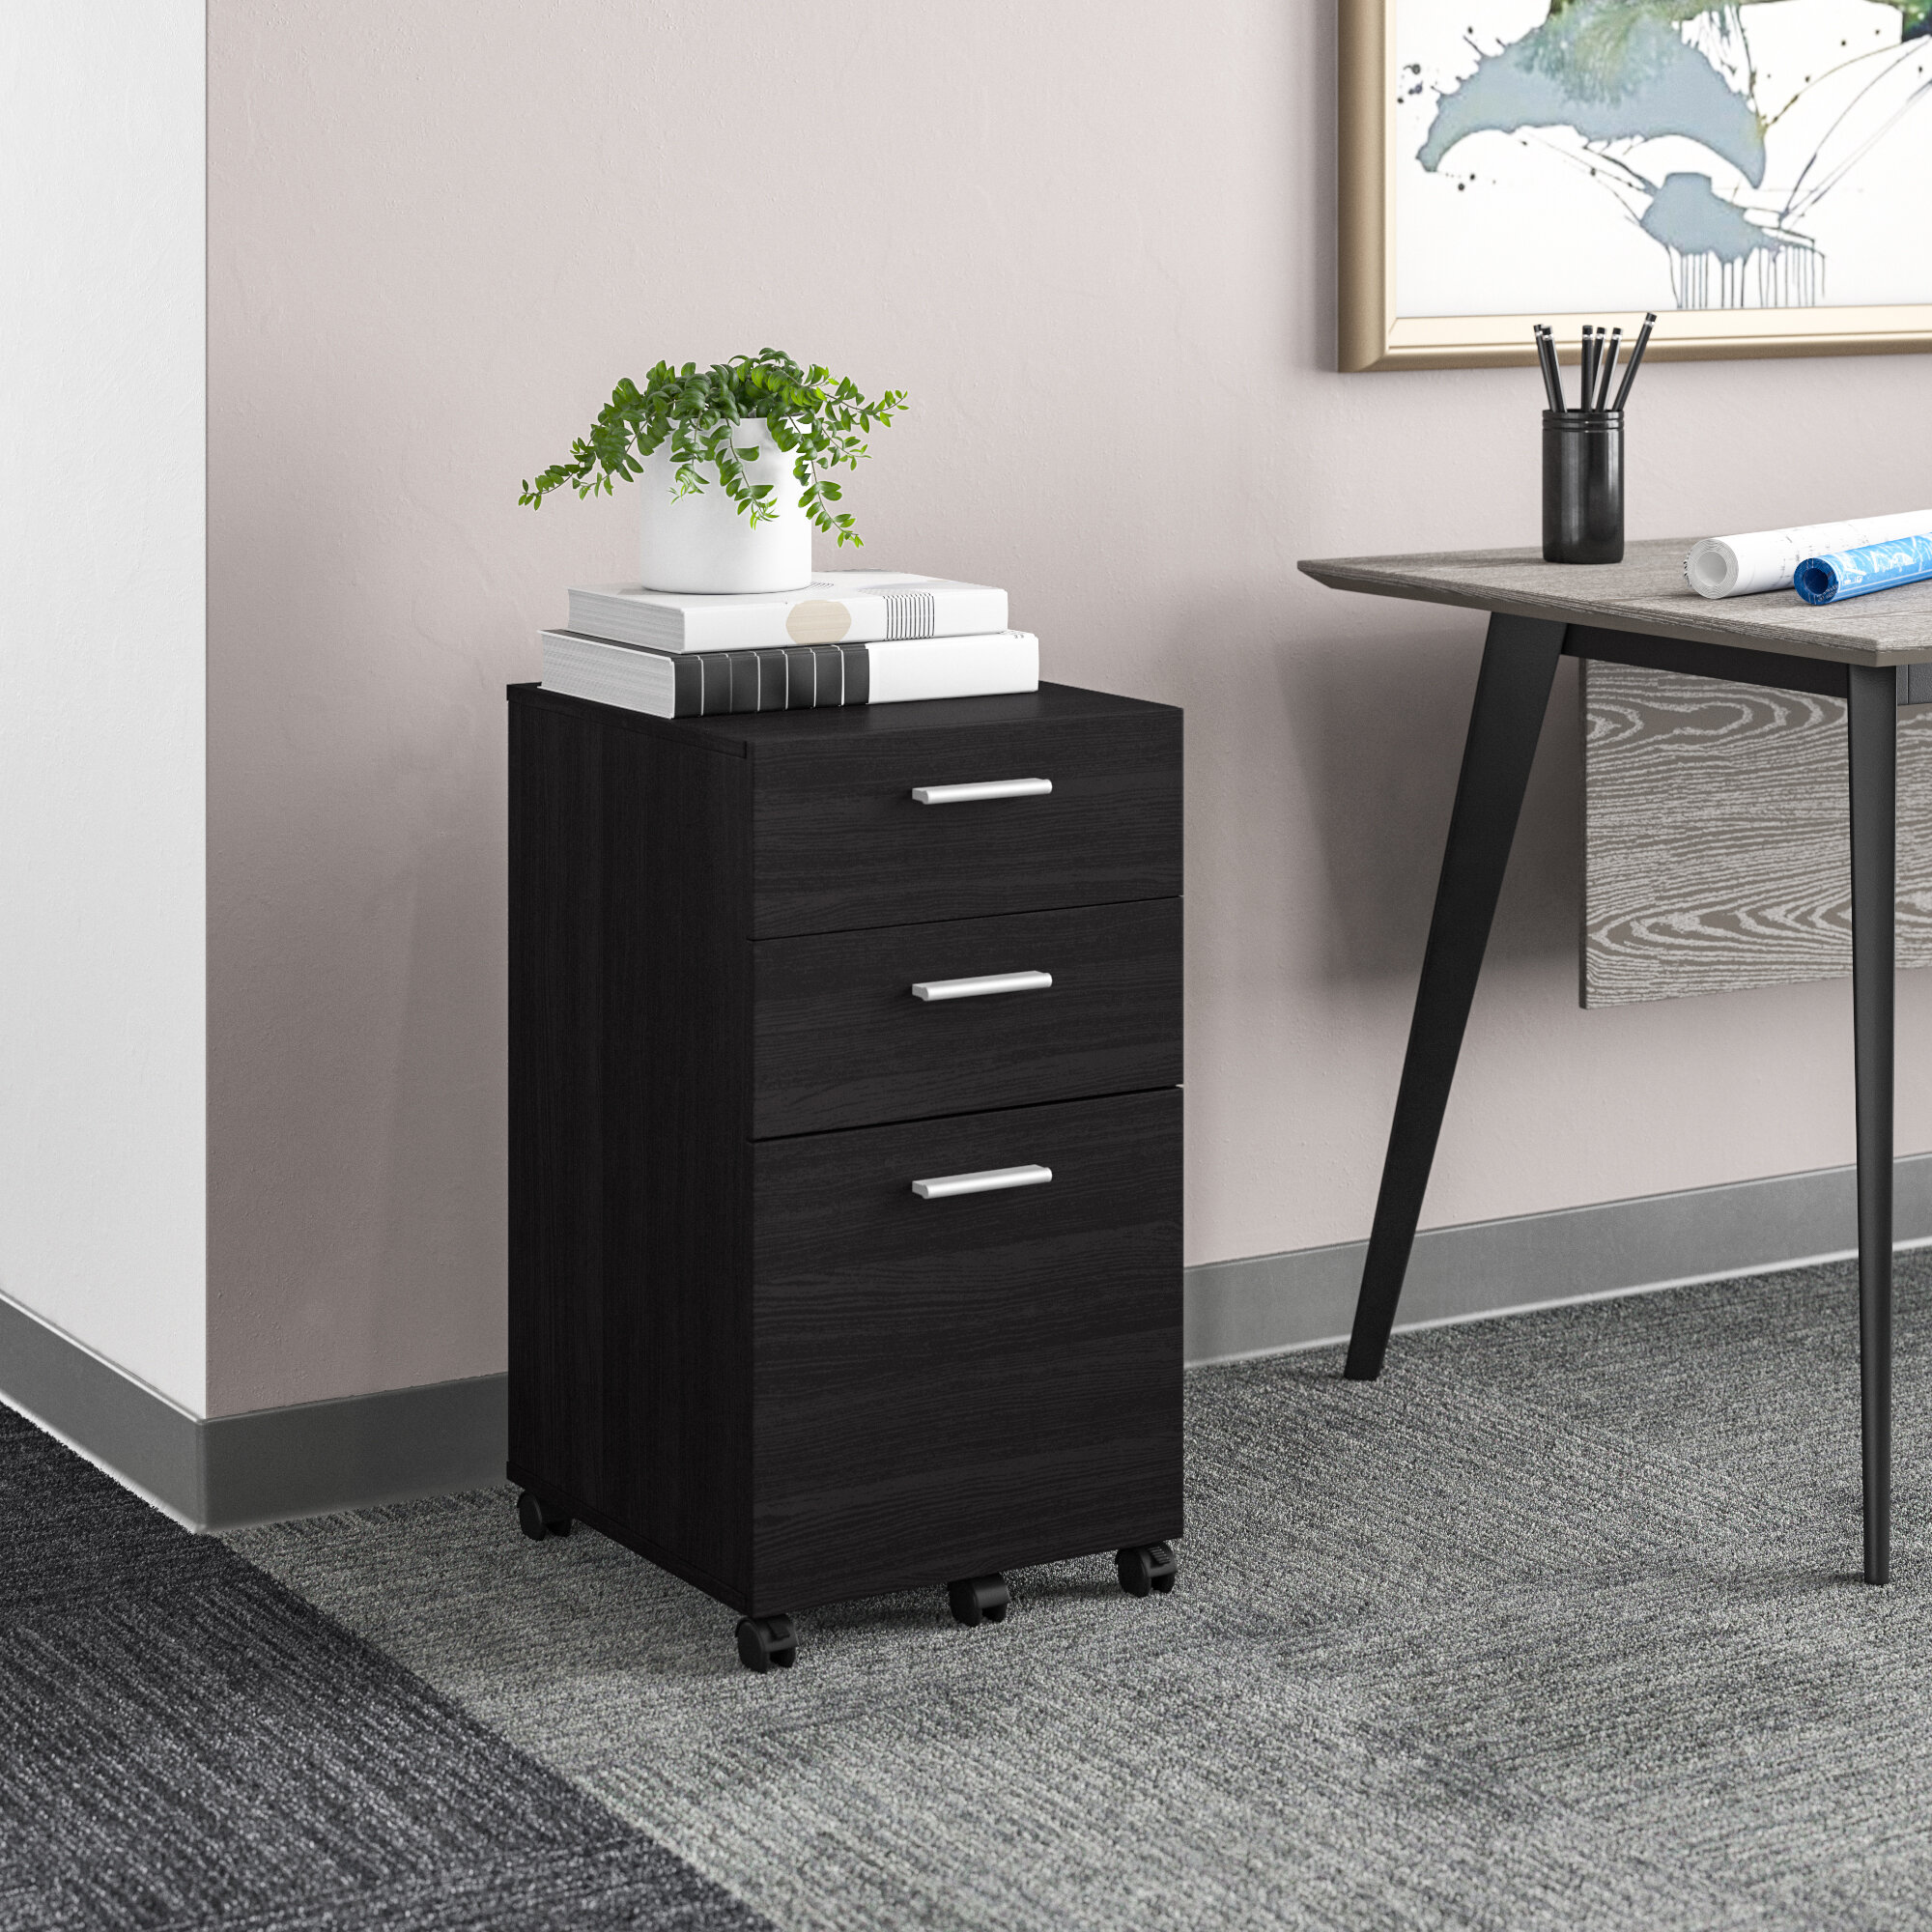 INTERGREAT Mobility Cabinet for Closet//Office Rolling Filing Cabinet 3 Drawers Fully Assembled White A